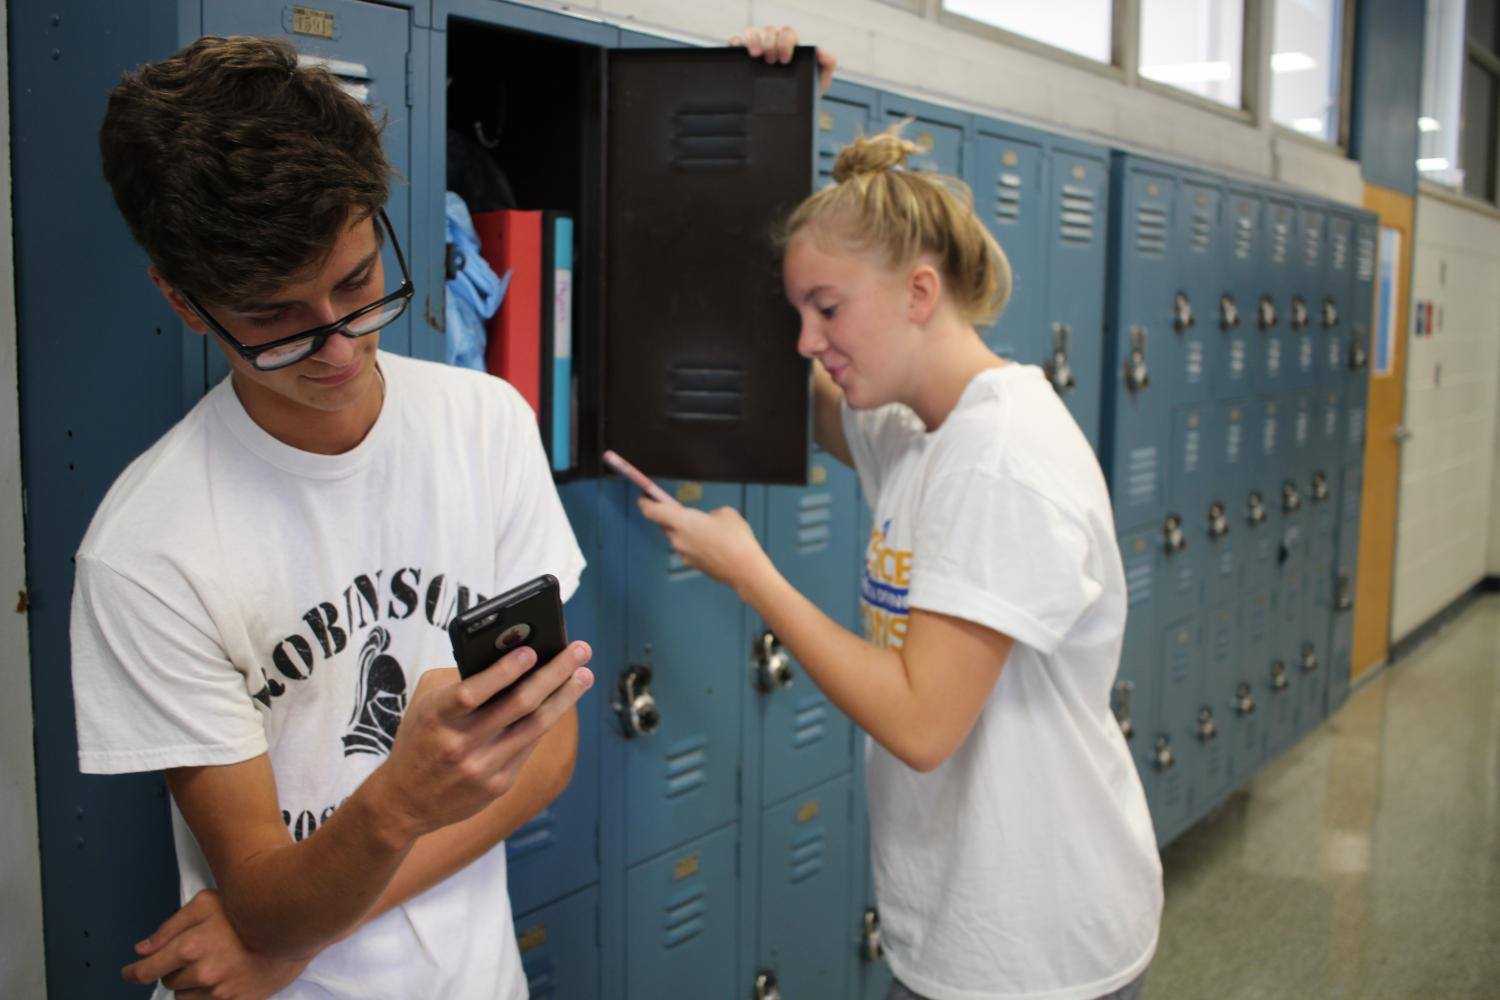 Abigail Meyer ('18) and Andrew McMillan ('18) wait in the halls of Robinson on their cellphones.